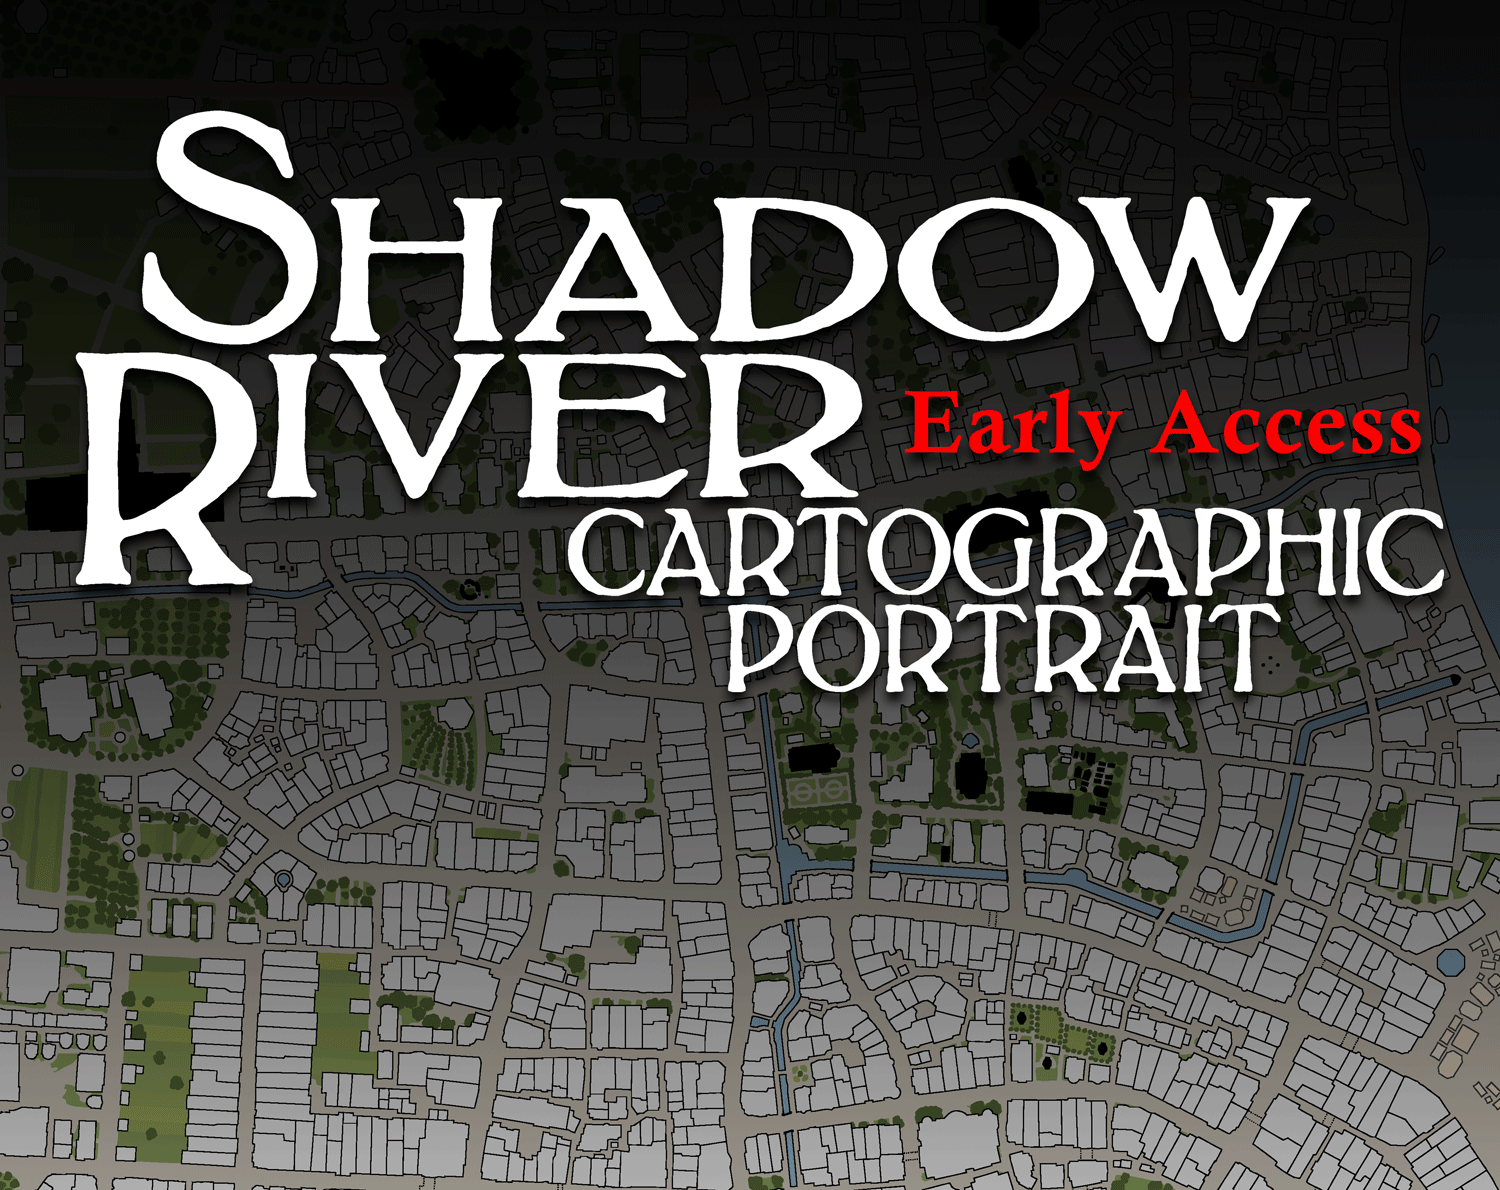 Uresia: Shadow River Cartographic Portrait